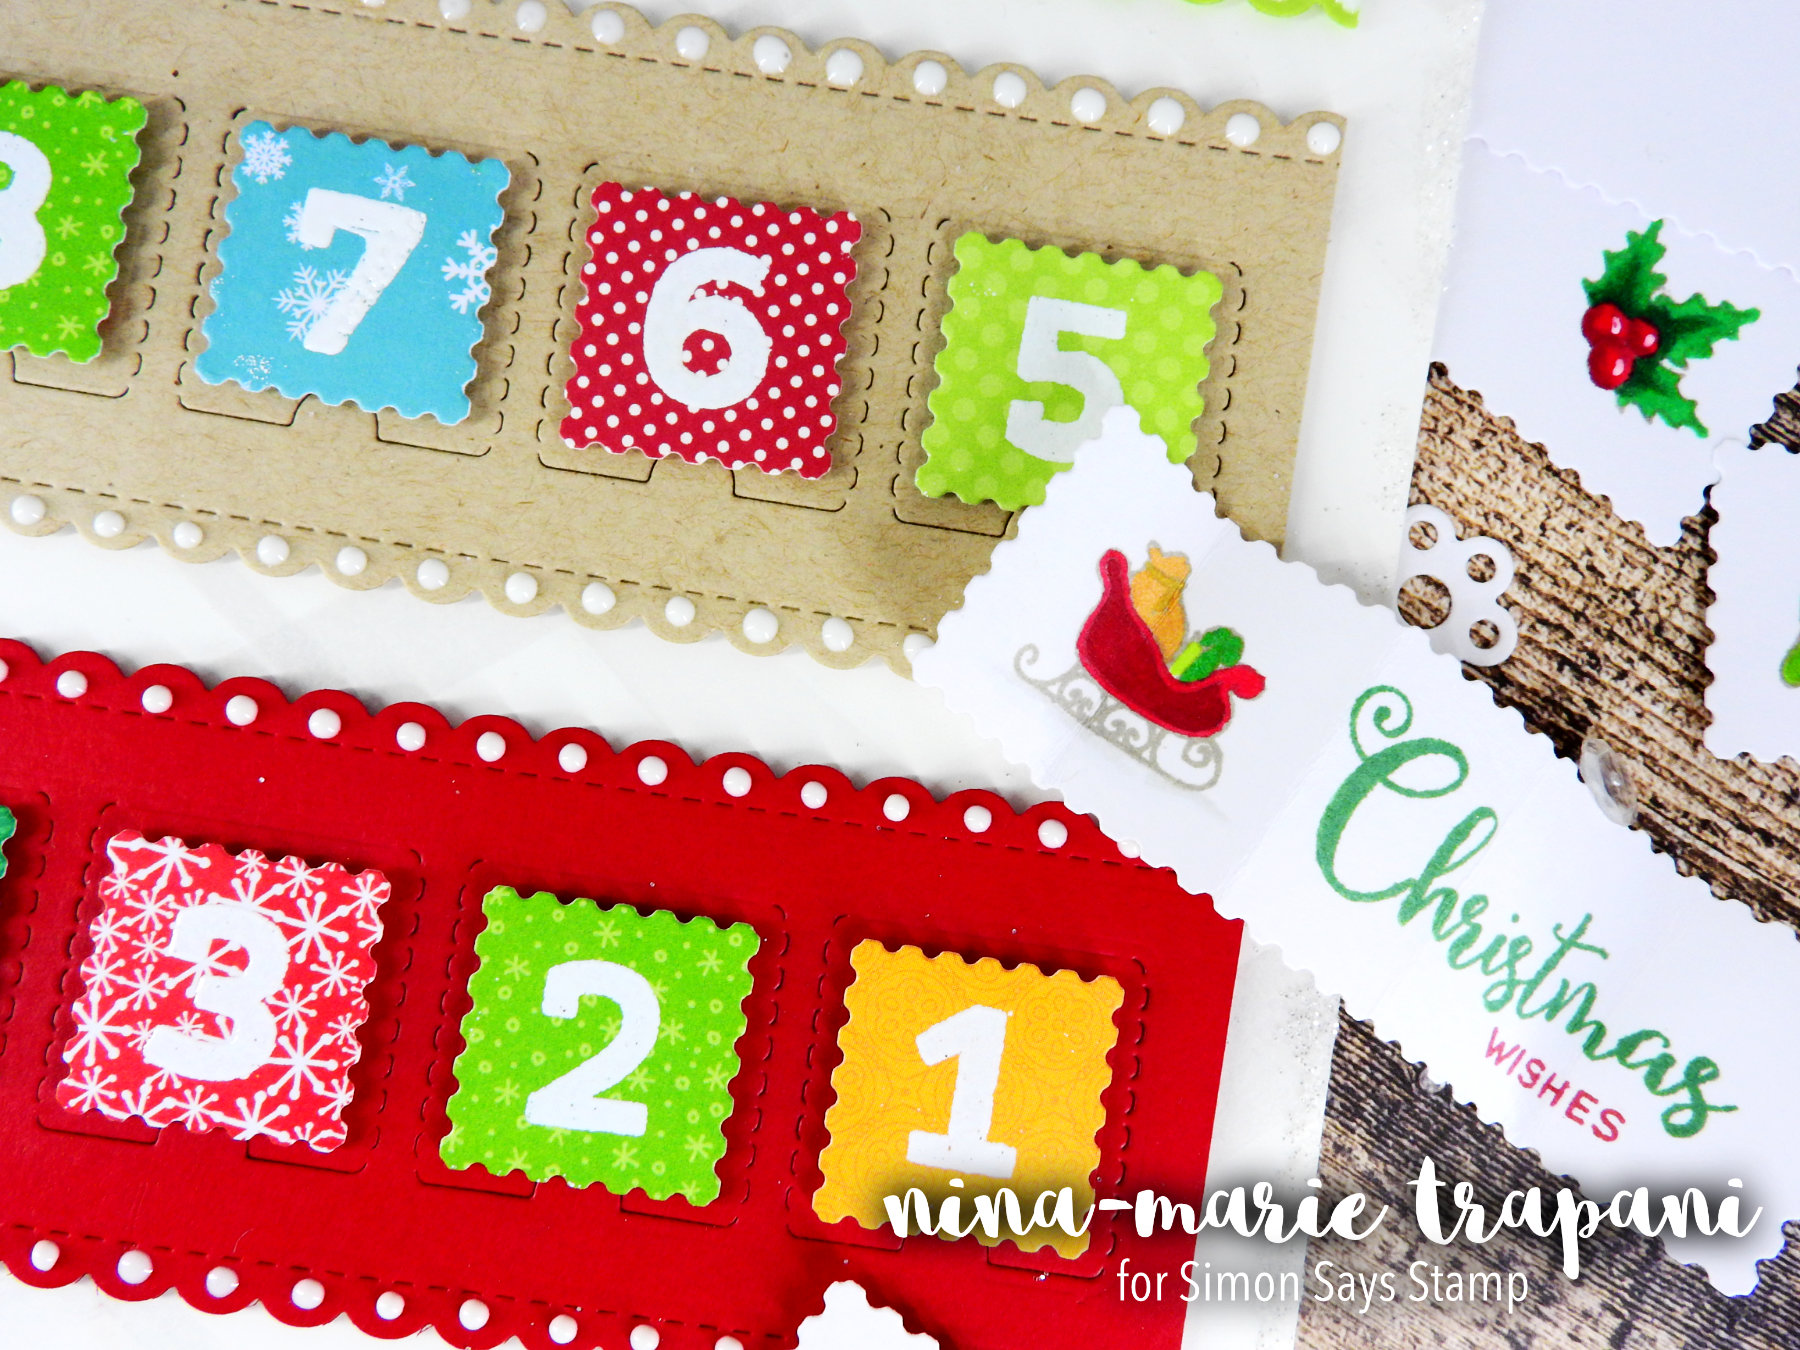 Simon Says Stamp Hop + Die Cut Advent Calendar Nina-Marie Design